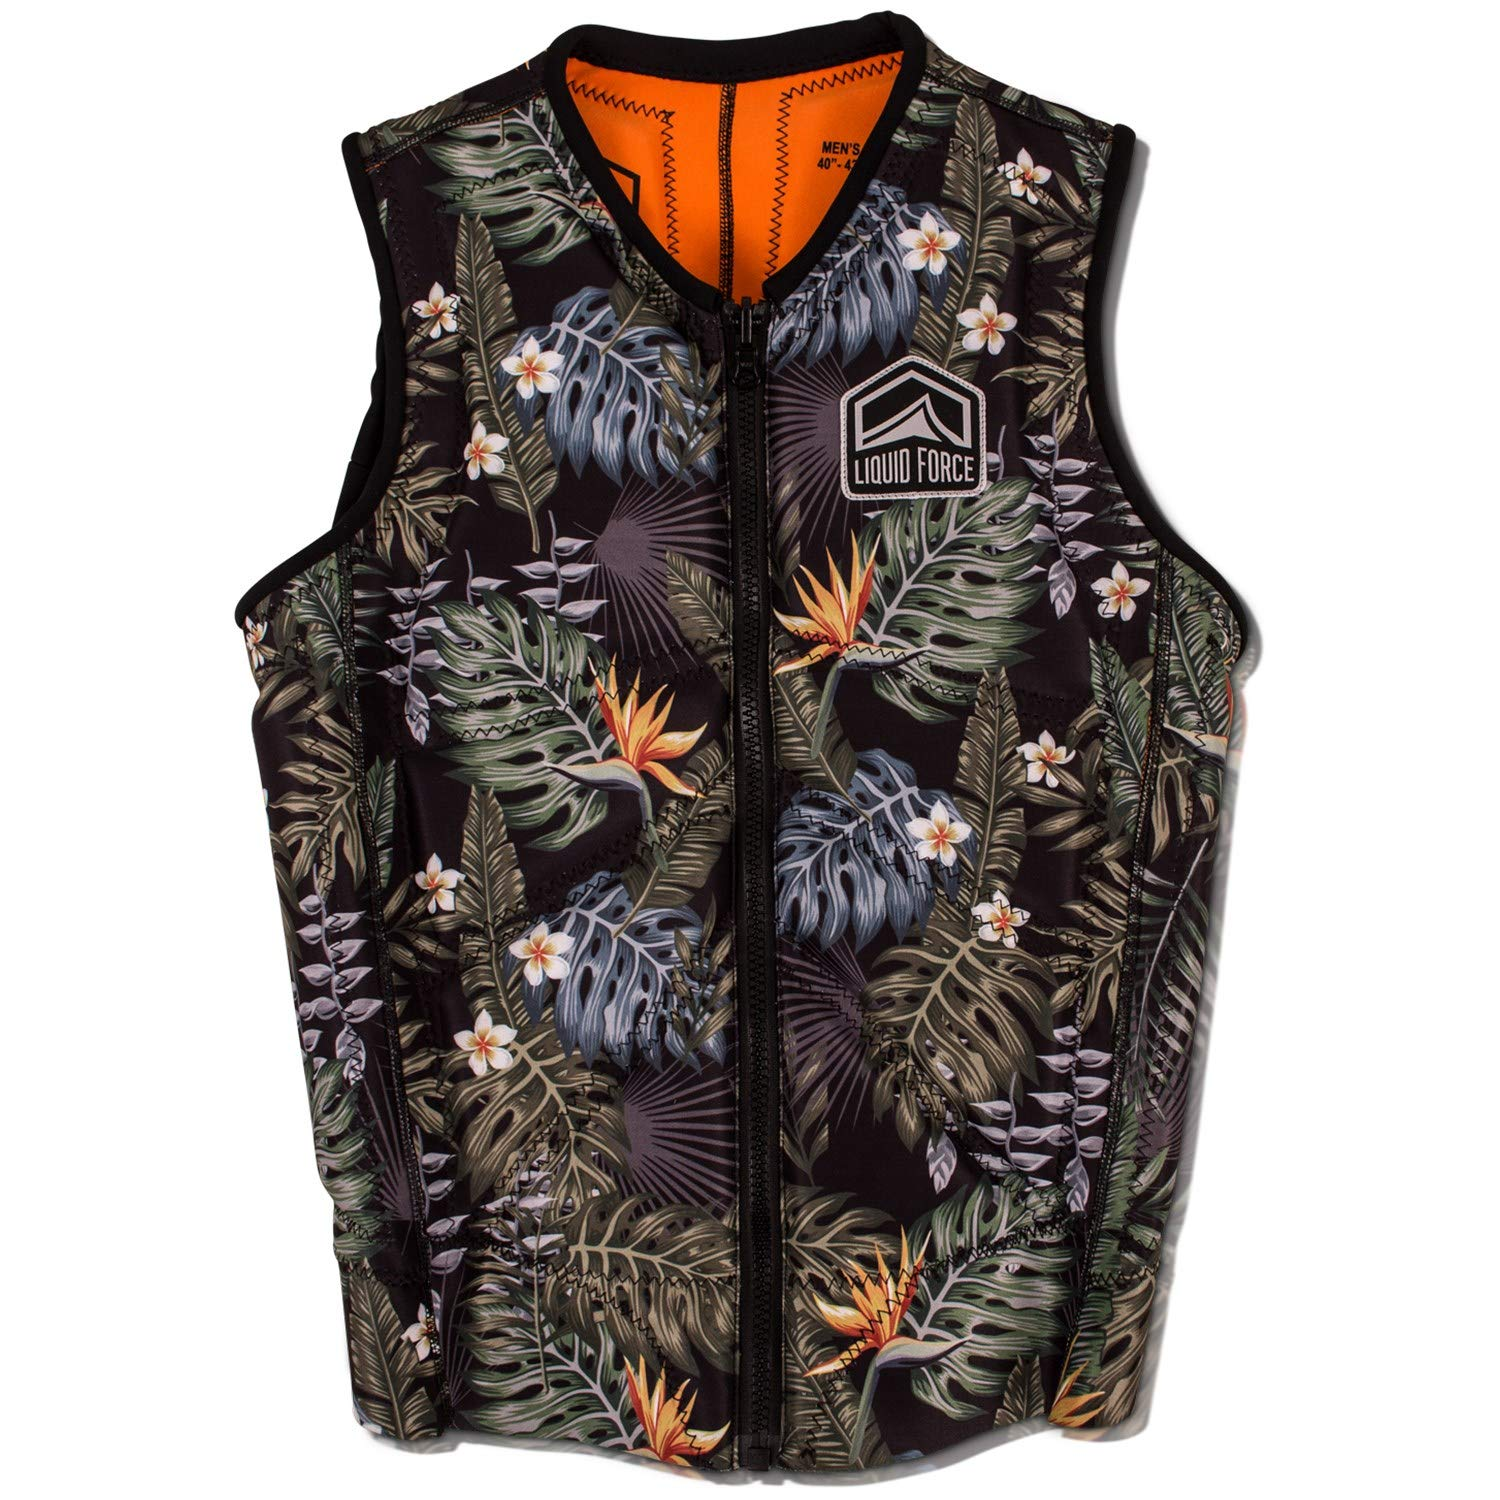 Liquid Force Z-Cardigan Comp Wakeboard Vest 2019 - Large by Liquid Force